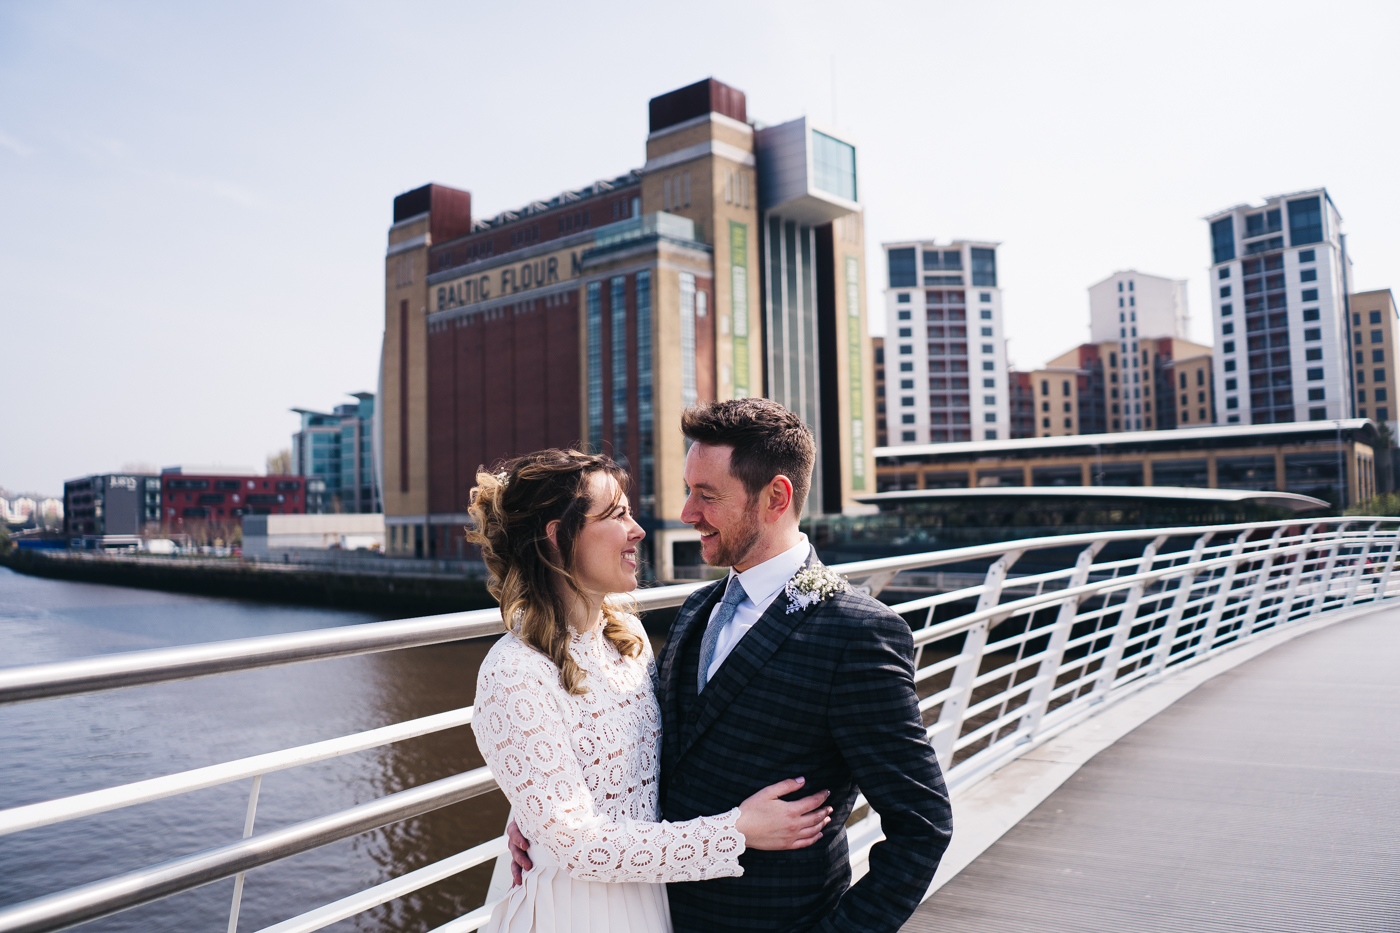 the couple stand together with the baltic in the background. wedding at the baltic newcastle gateshead north east photographer